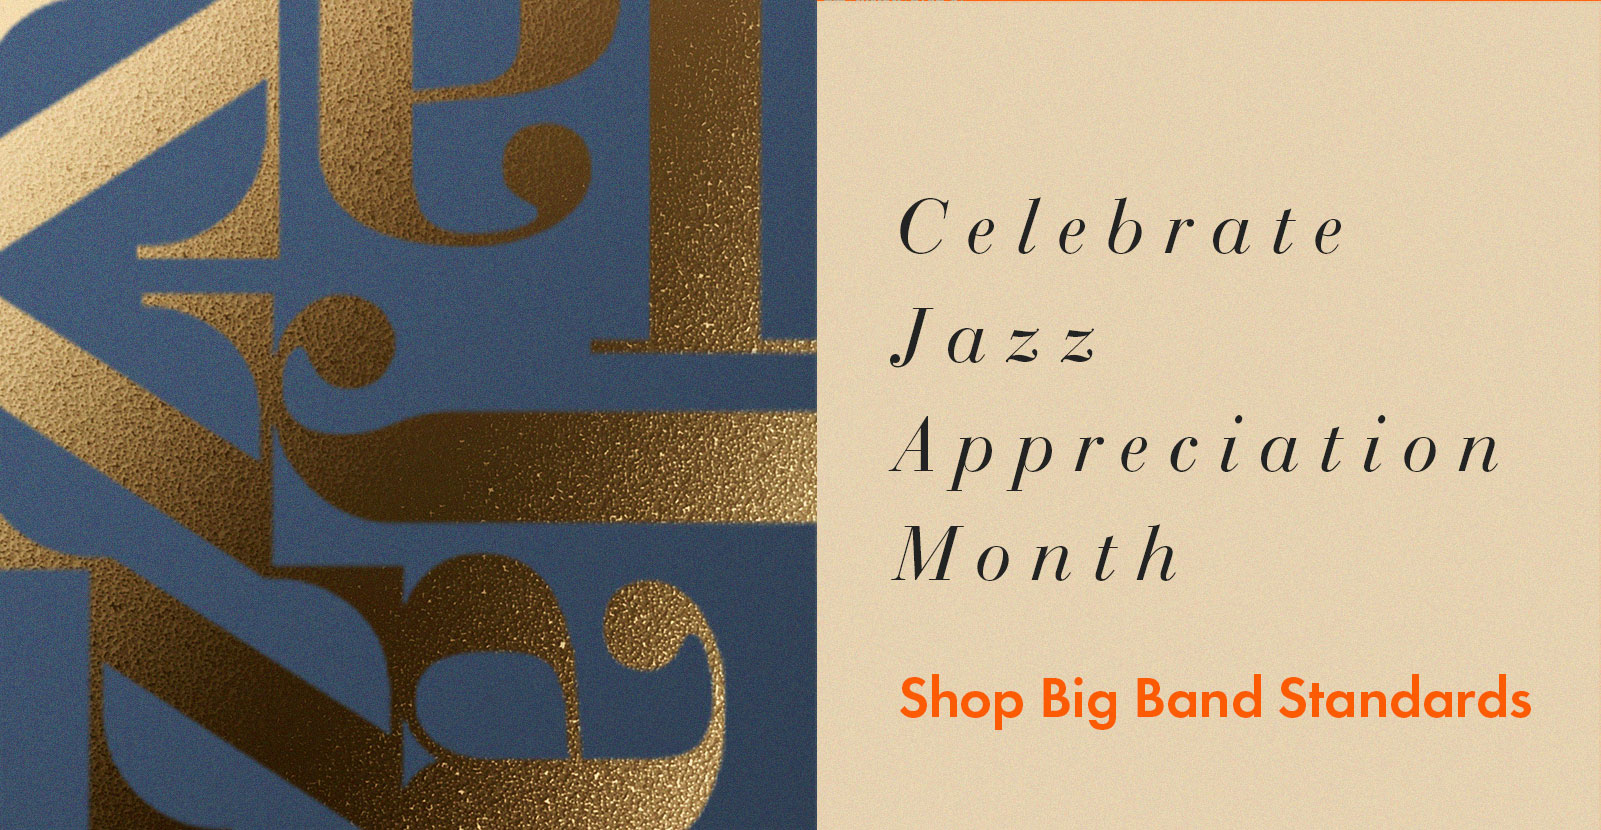 Celebrate Jazz Appreciation Month with big band standards.